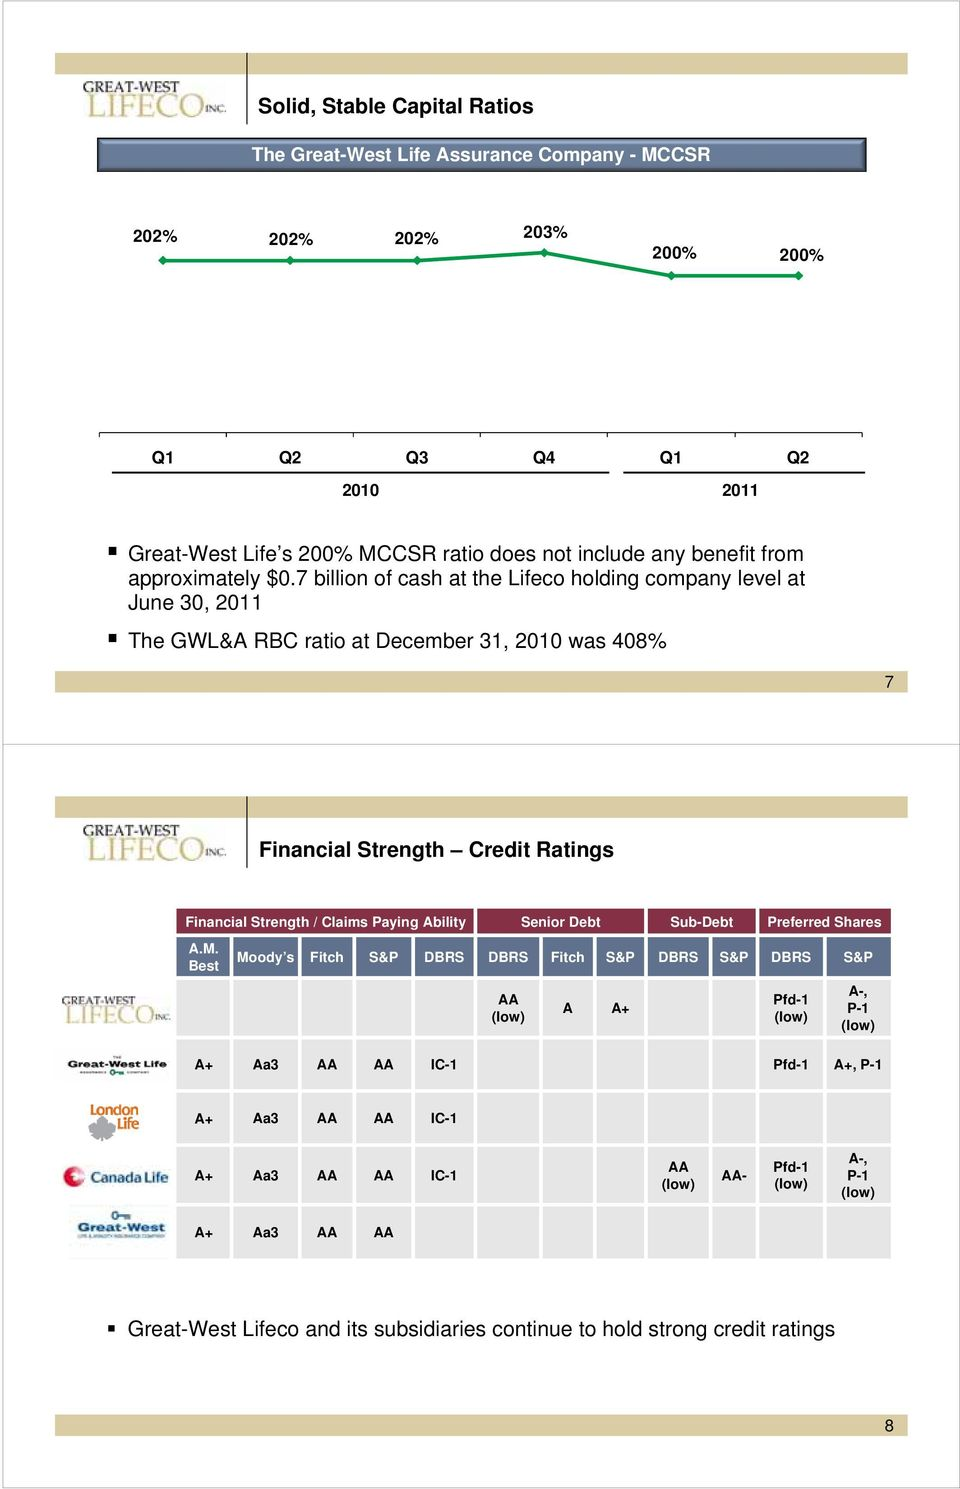 7 billion of cash at the Lifeco holding company level at June 30, 2011 The GWL&A RBC ratio at December 31, 2010 was 408% 7 Financial Strength Credit Ratings Financial Strength / Claims